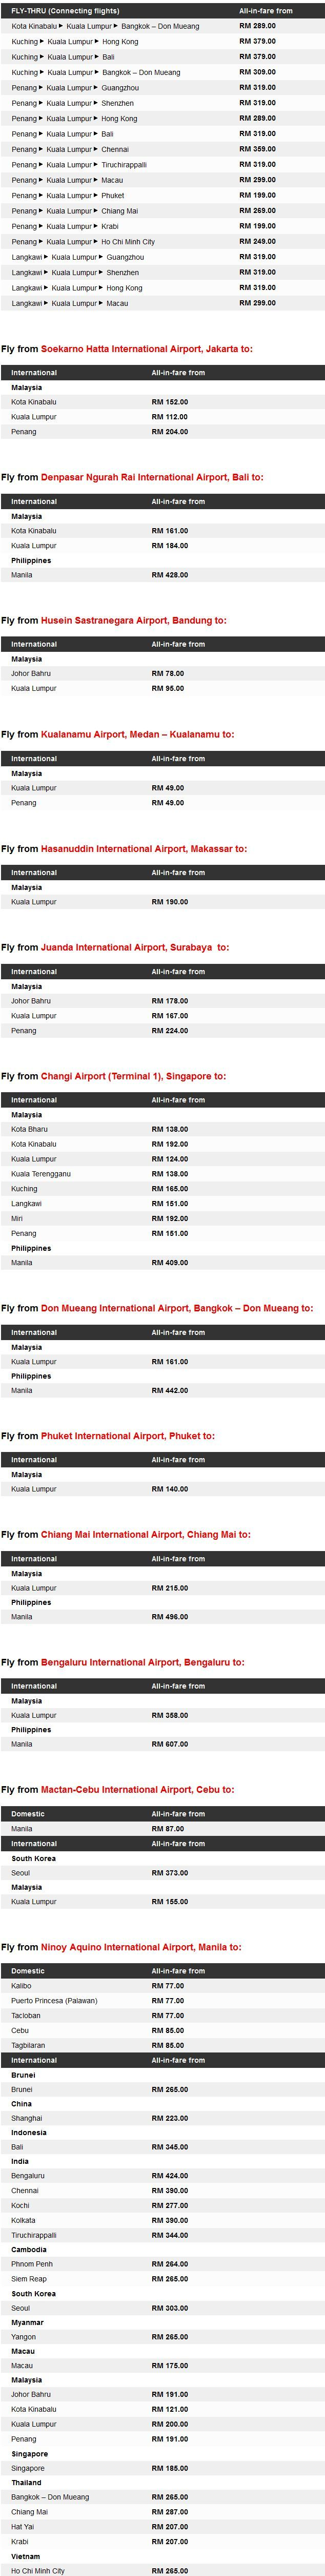 AirAsia Amazing Year End Fares Details